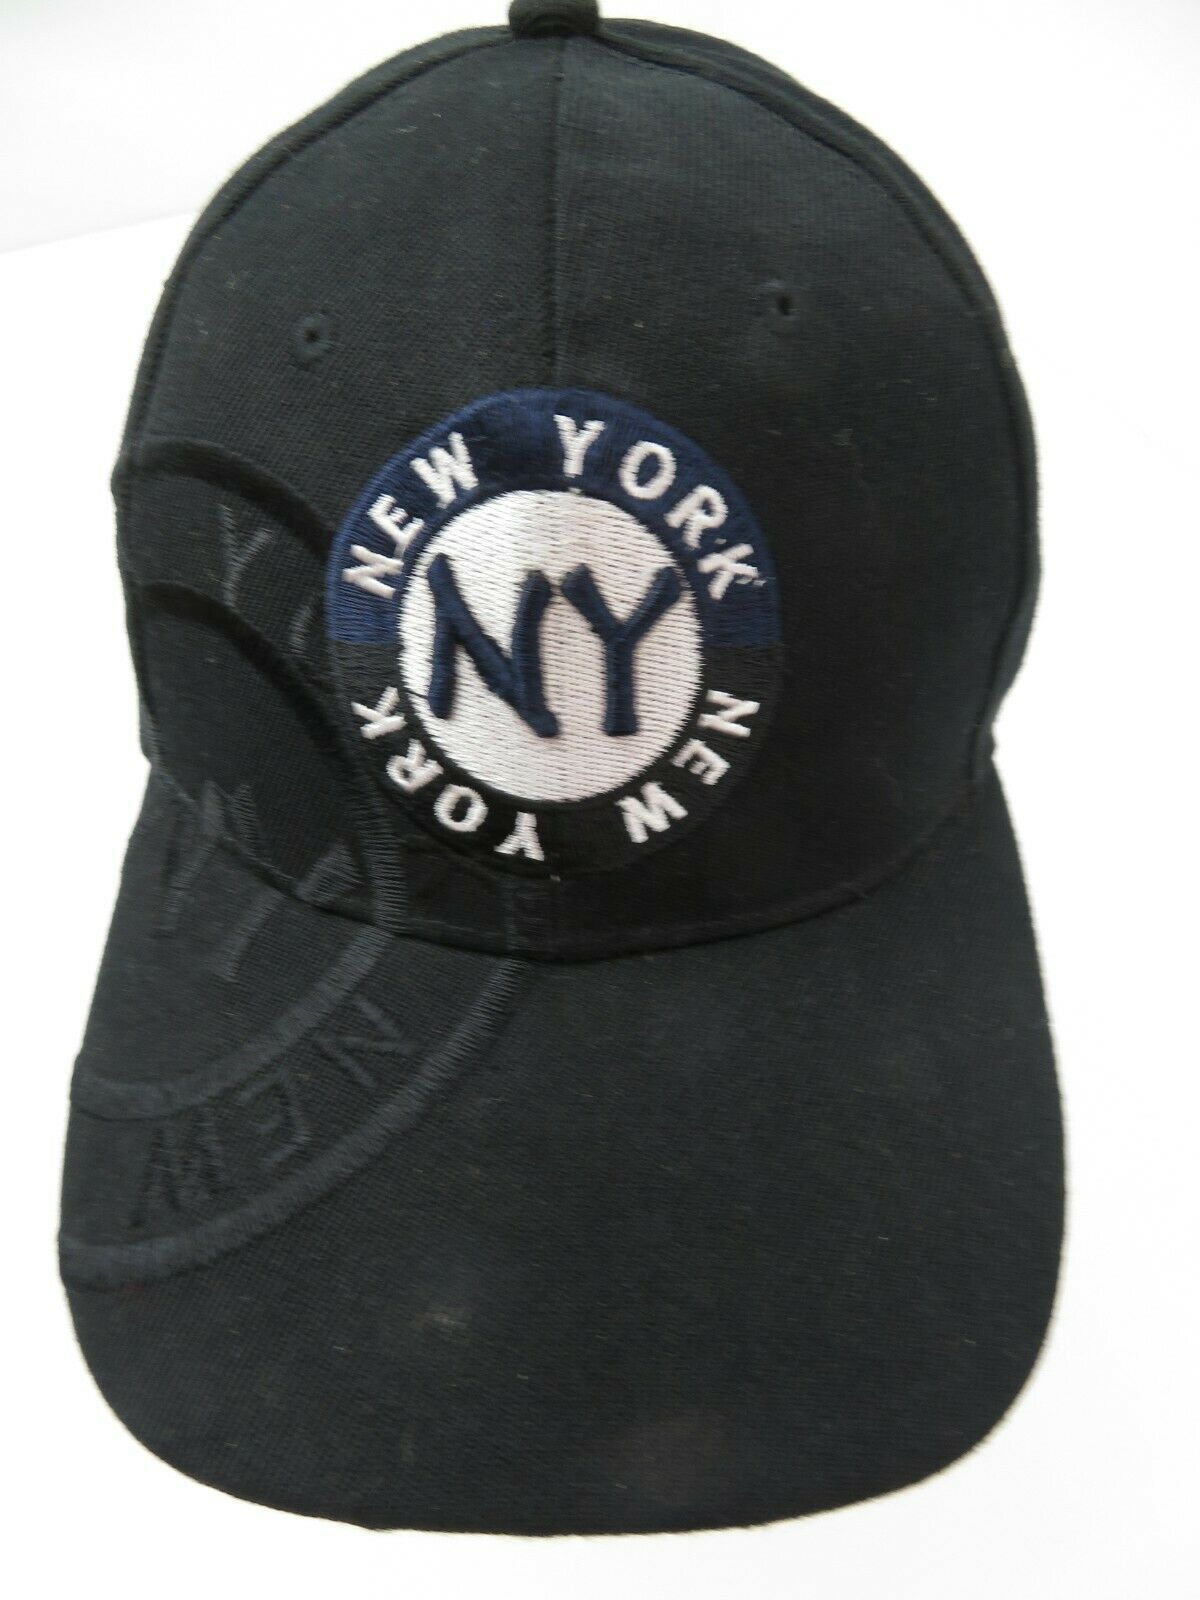 Primary image for New York Black White Snapback Adult Cap Hat